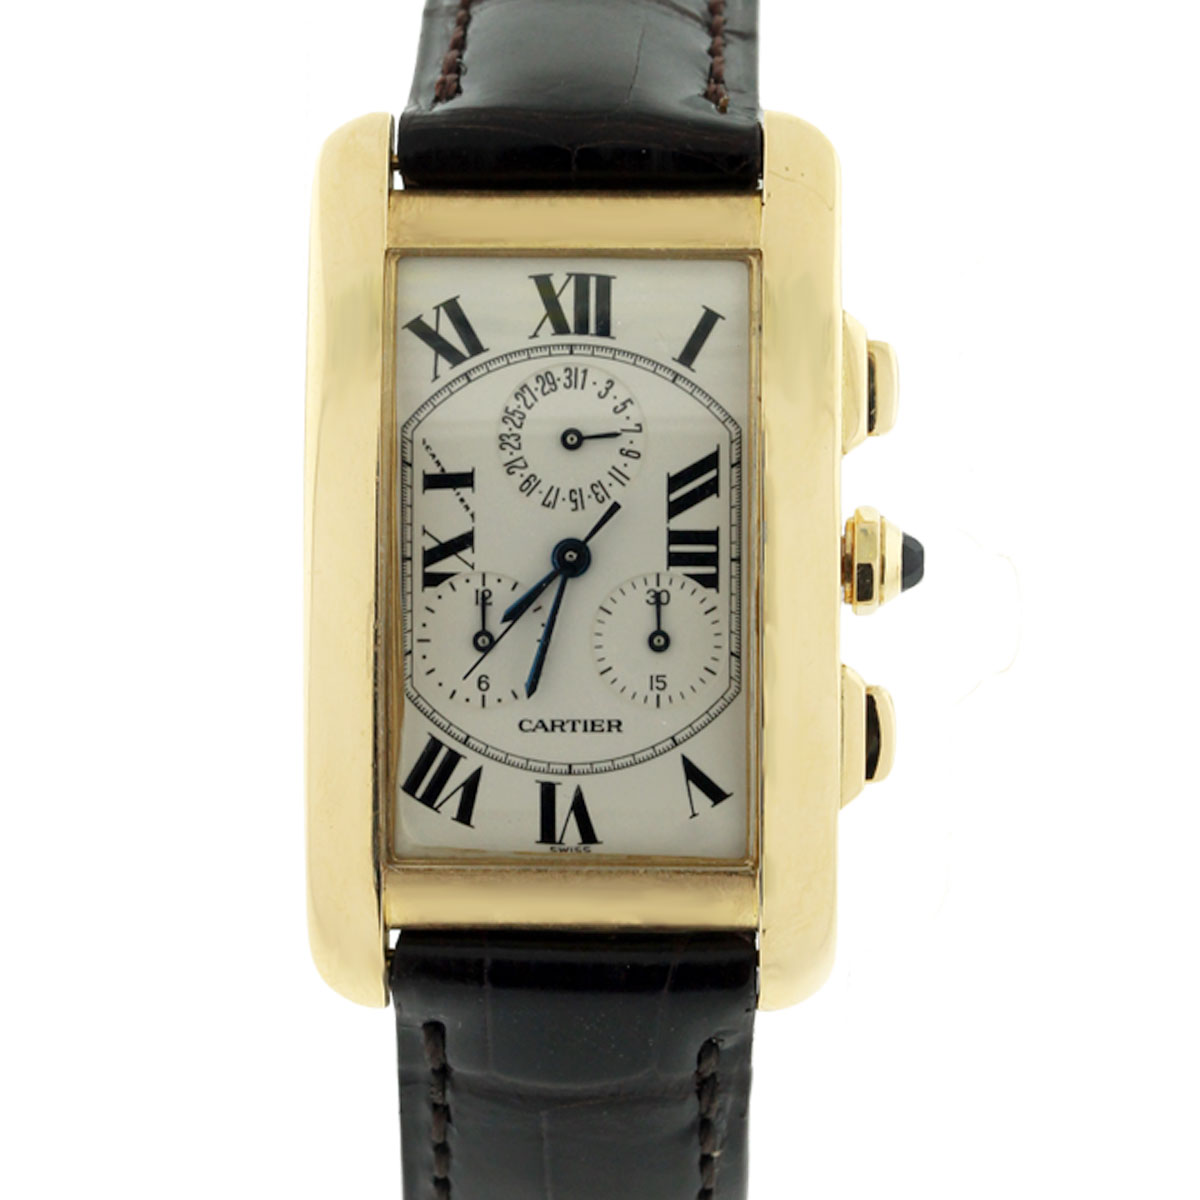 Cartier Tank Americaine 1750 Chronograph 18k Gold Watch